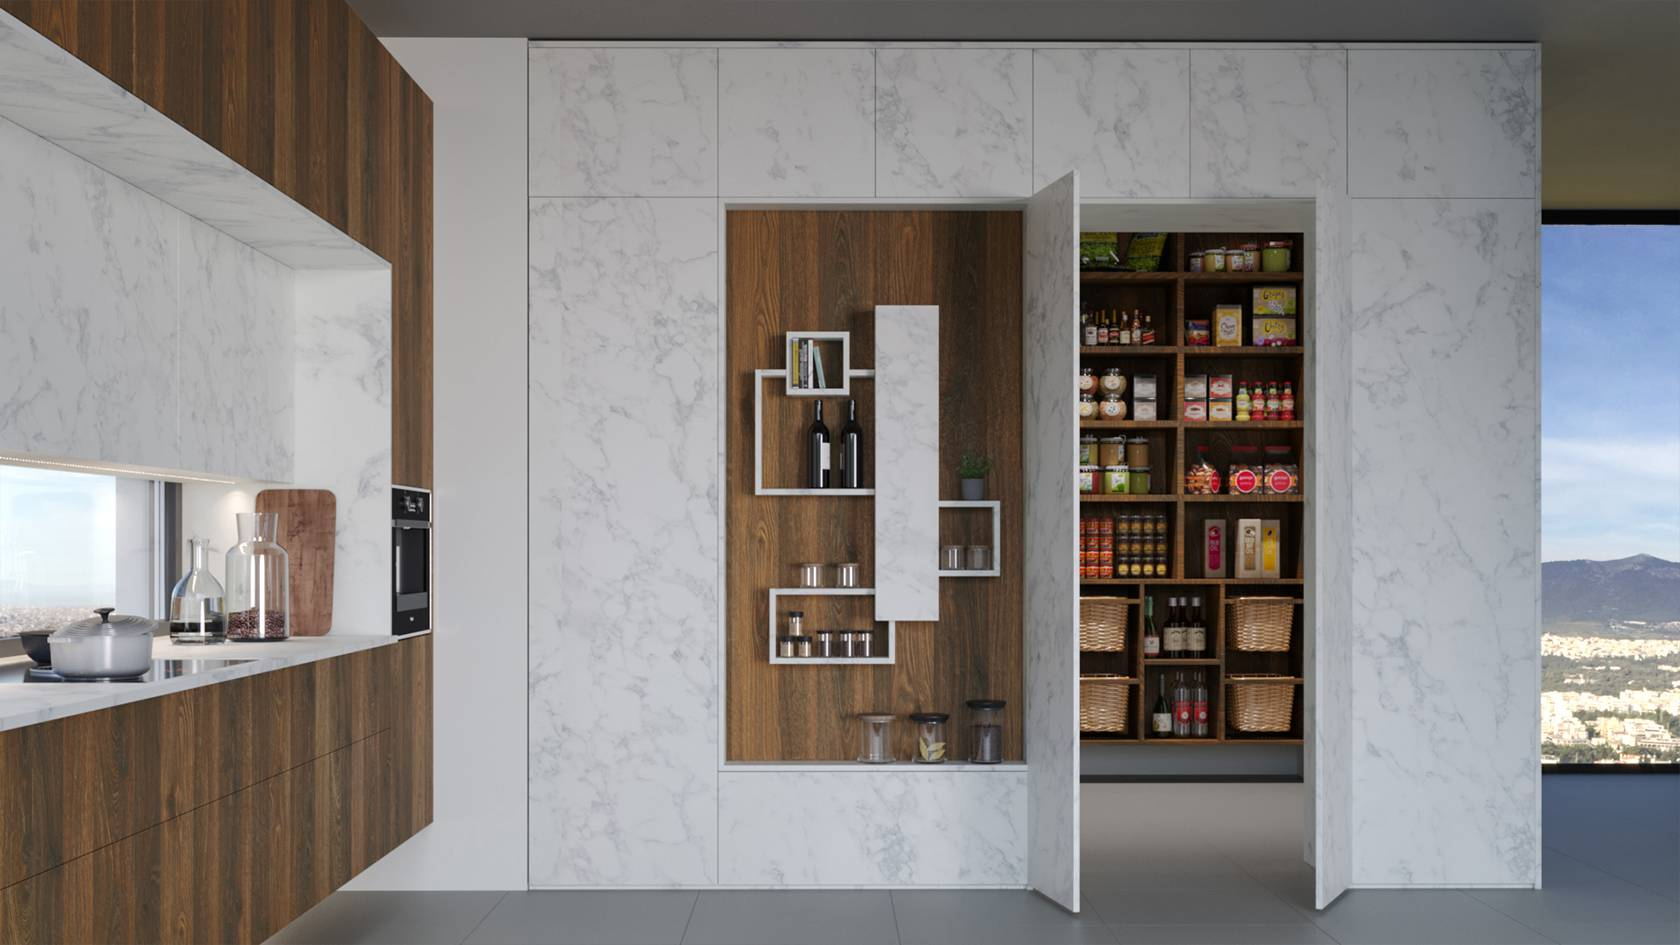 Food storage space (Pantry)